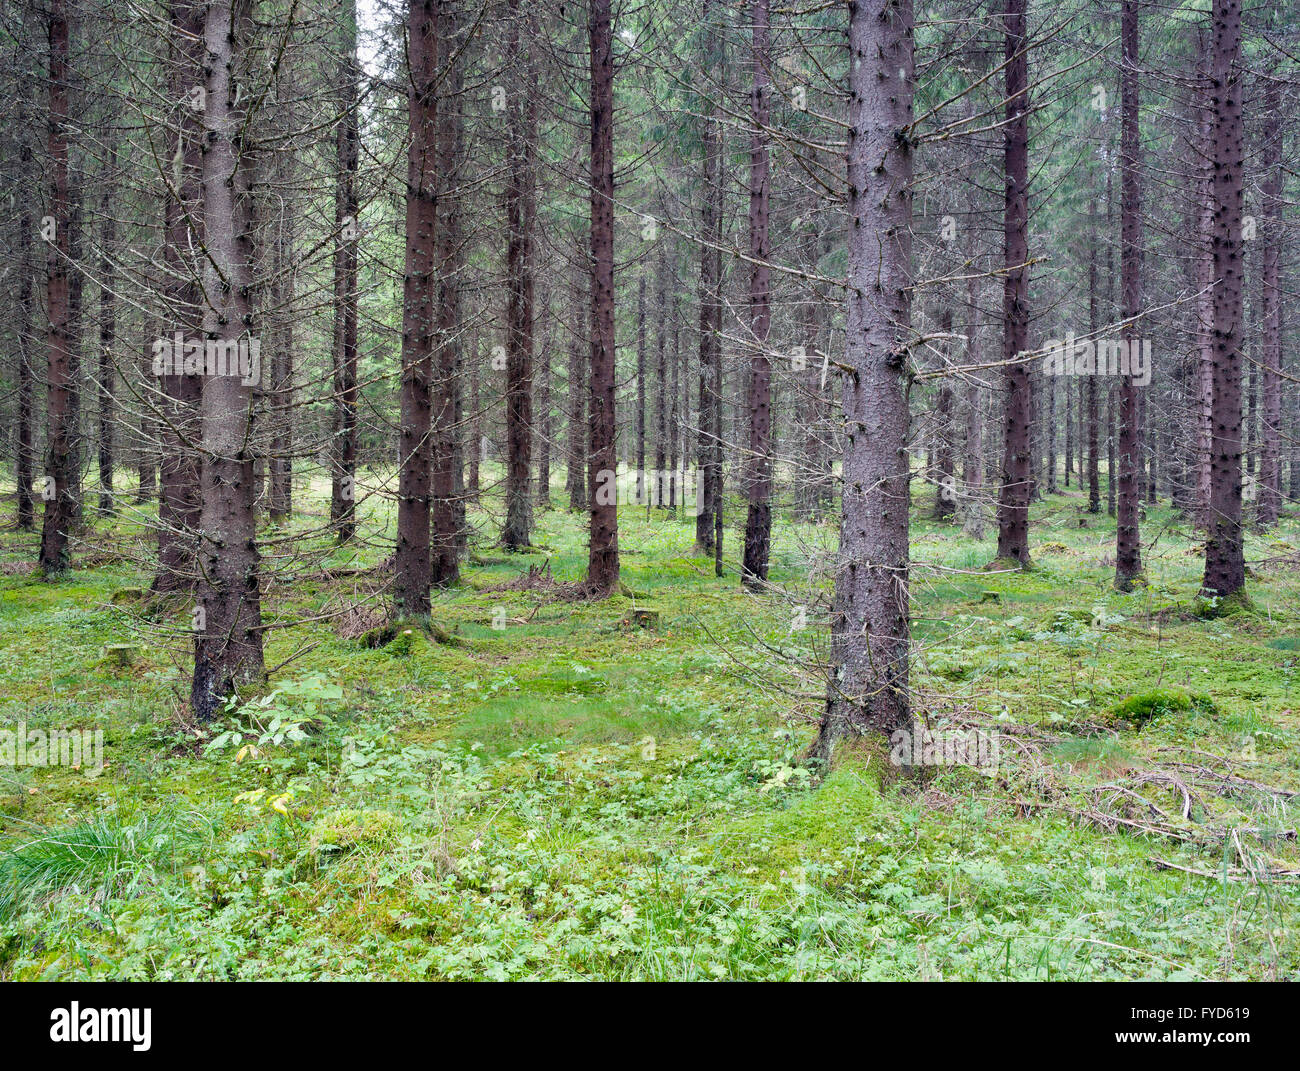 Spruce forest - Stock Image